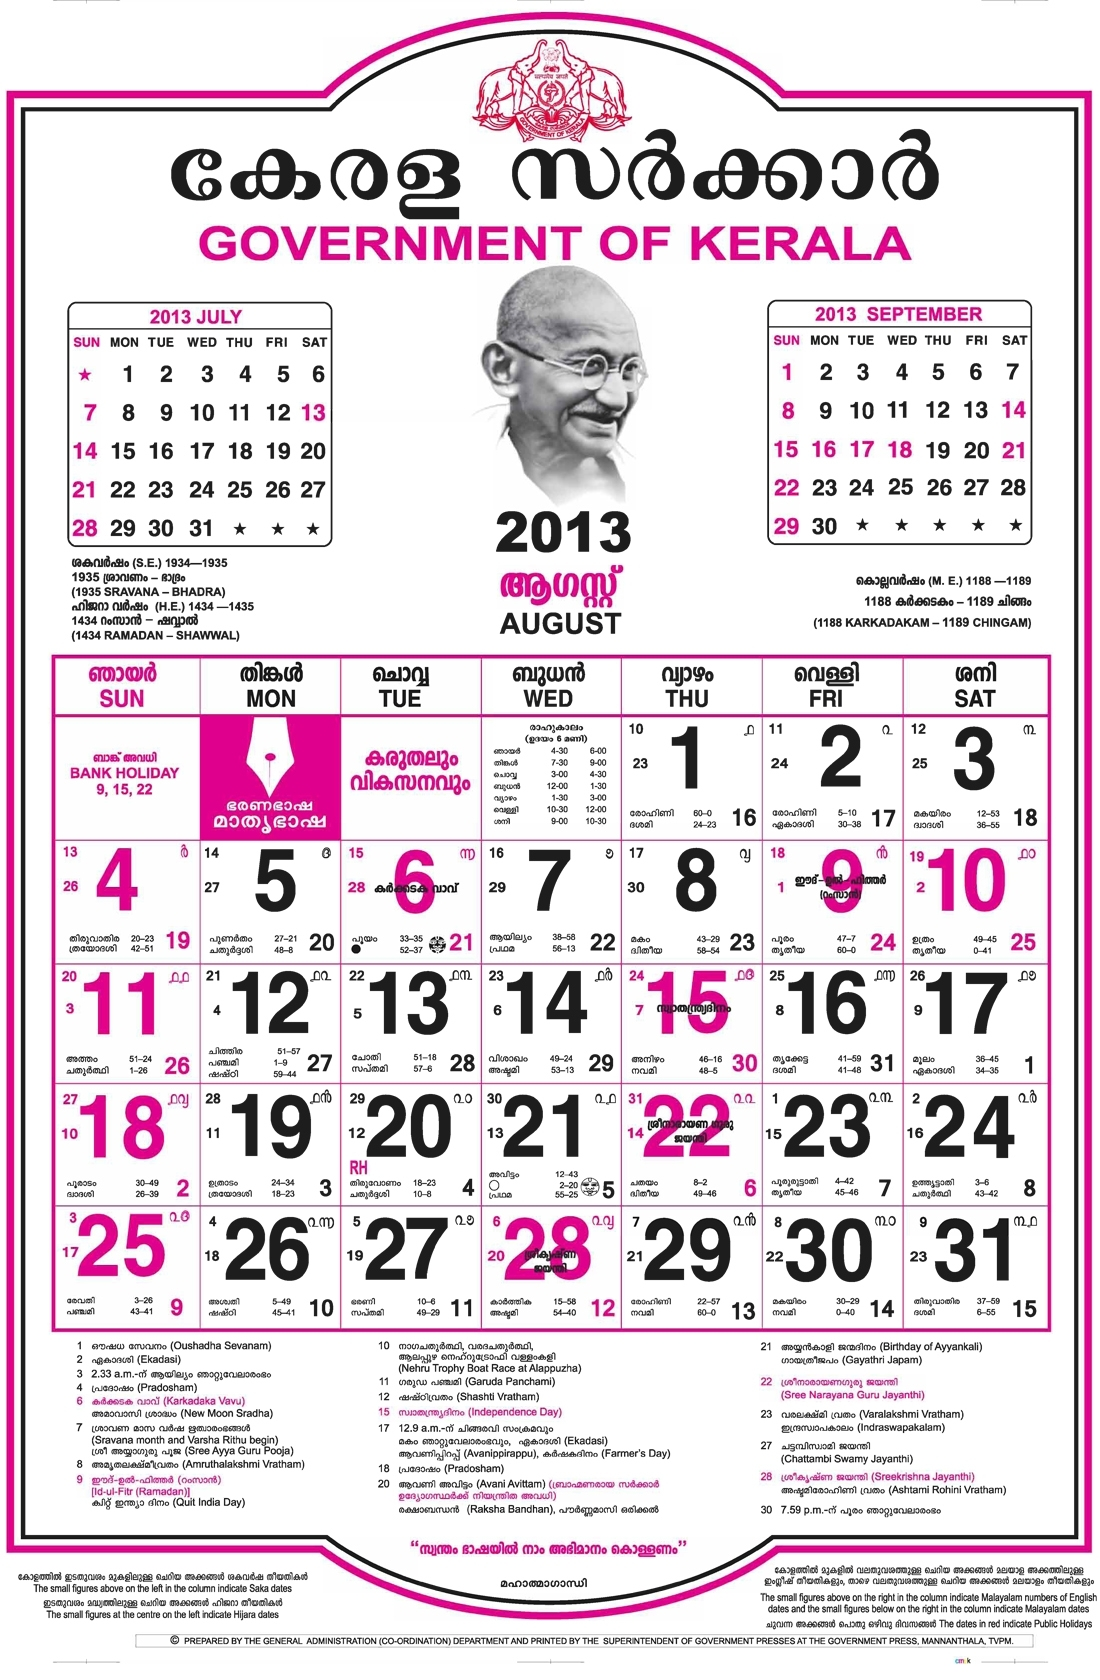 kerala government calendar 2018 pdf free download flash design Kerala Government Calendar 2018 Pdf Free Download erdferdf